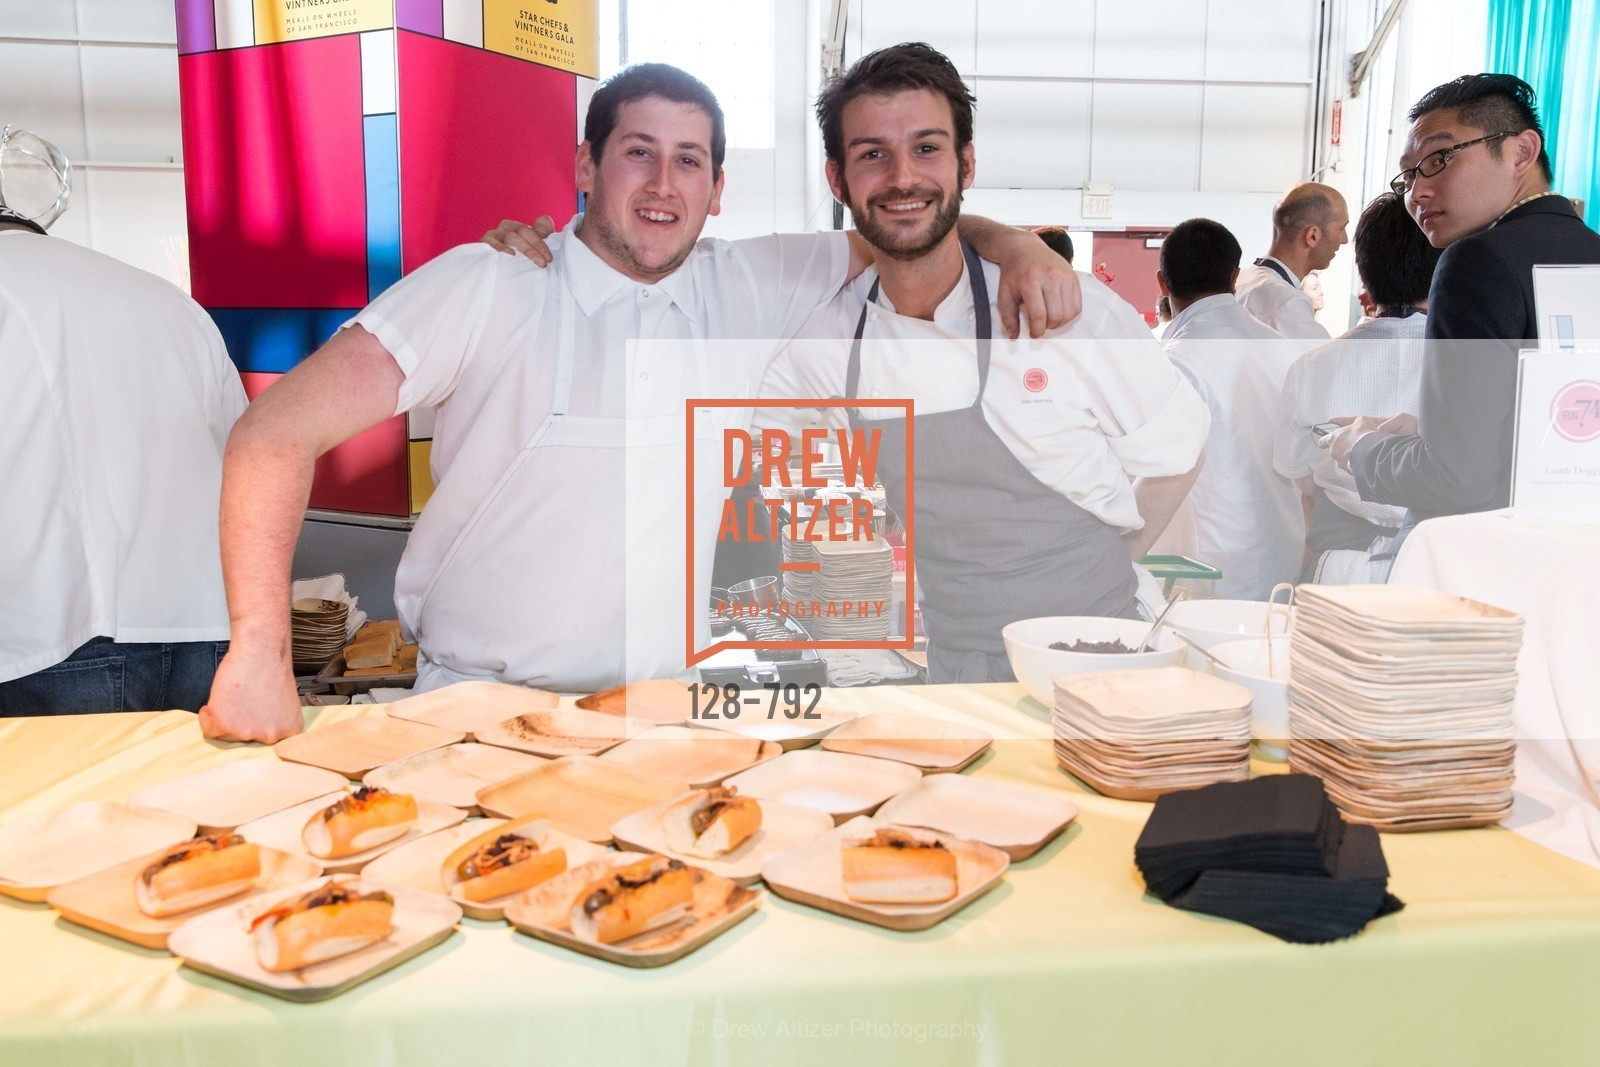 Adam Sobel, Alex Griffina, MEALS ON WHEELS OF SAN FRANCISCO'S 28th Annual Star Chefs and Vintners Gala, US, April 20th, 2015,Drew Altizer, Drew Altizer Photography, full-service agency, private events, San Francisco photographer, photographer california